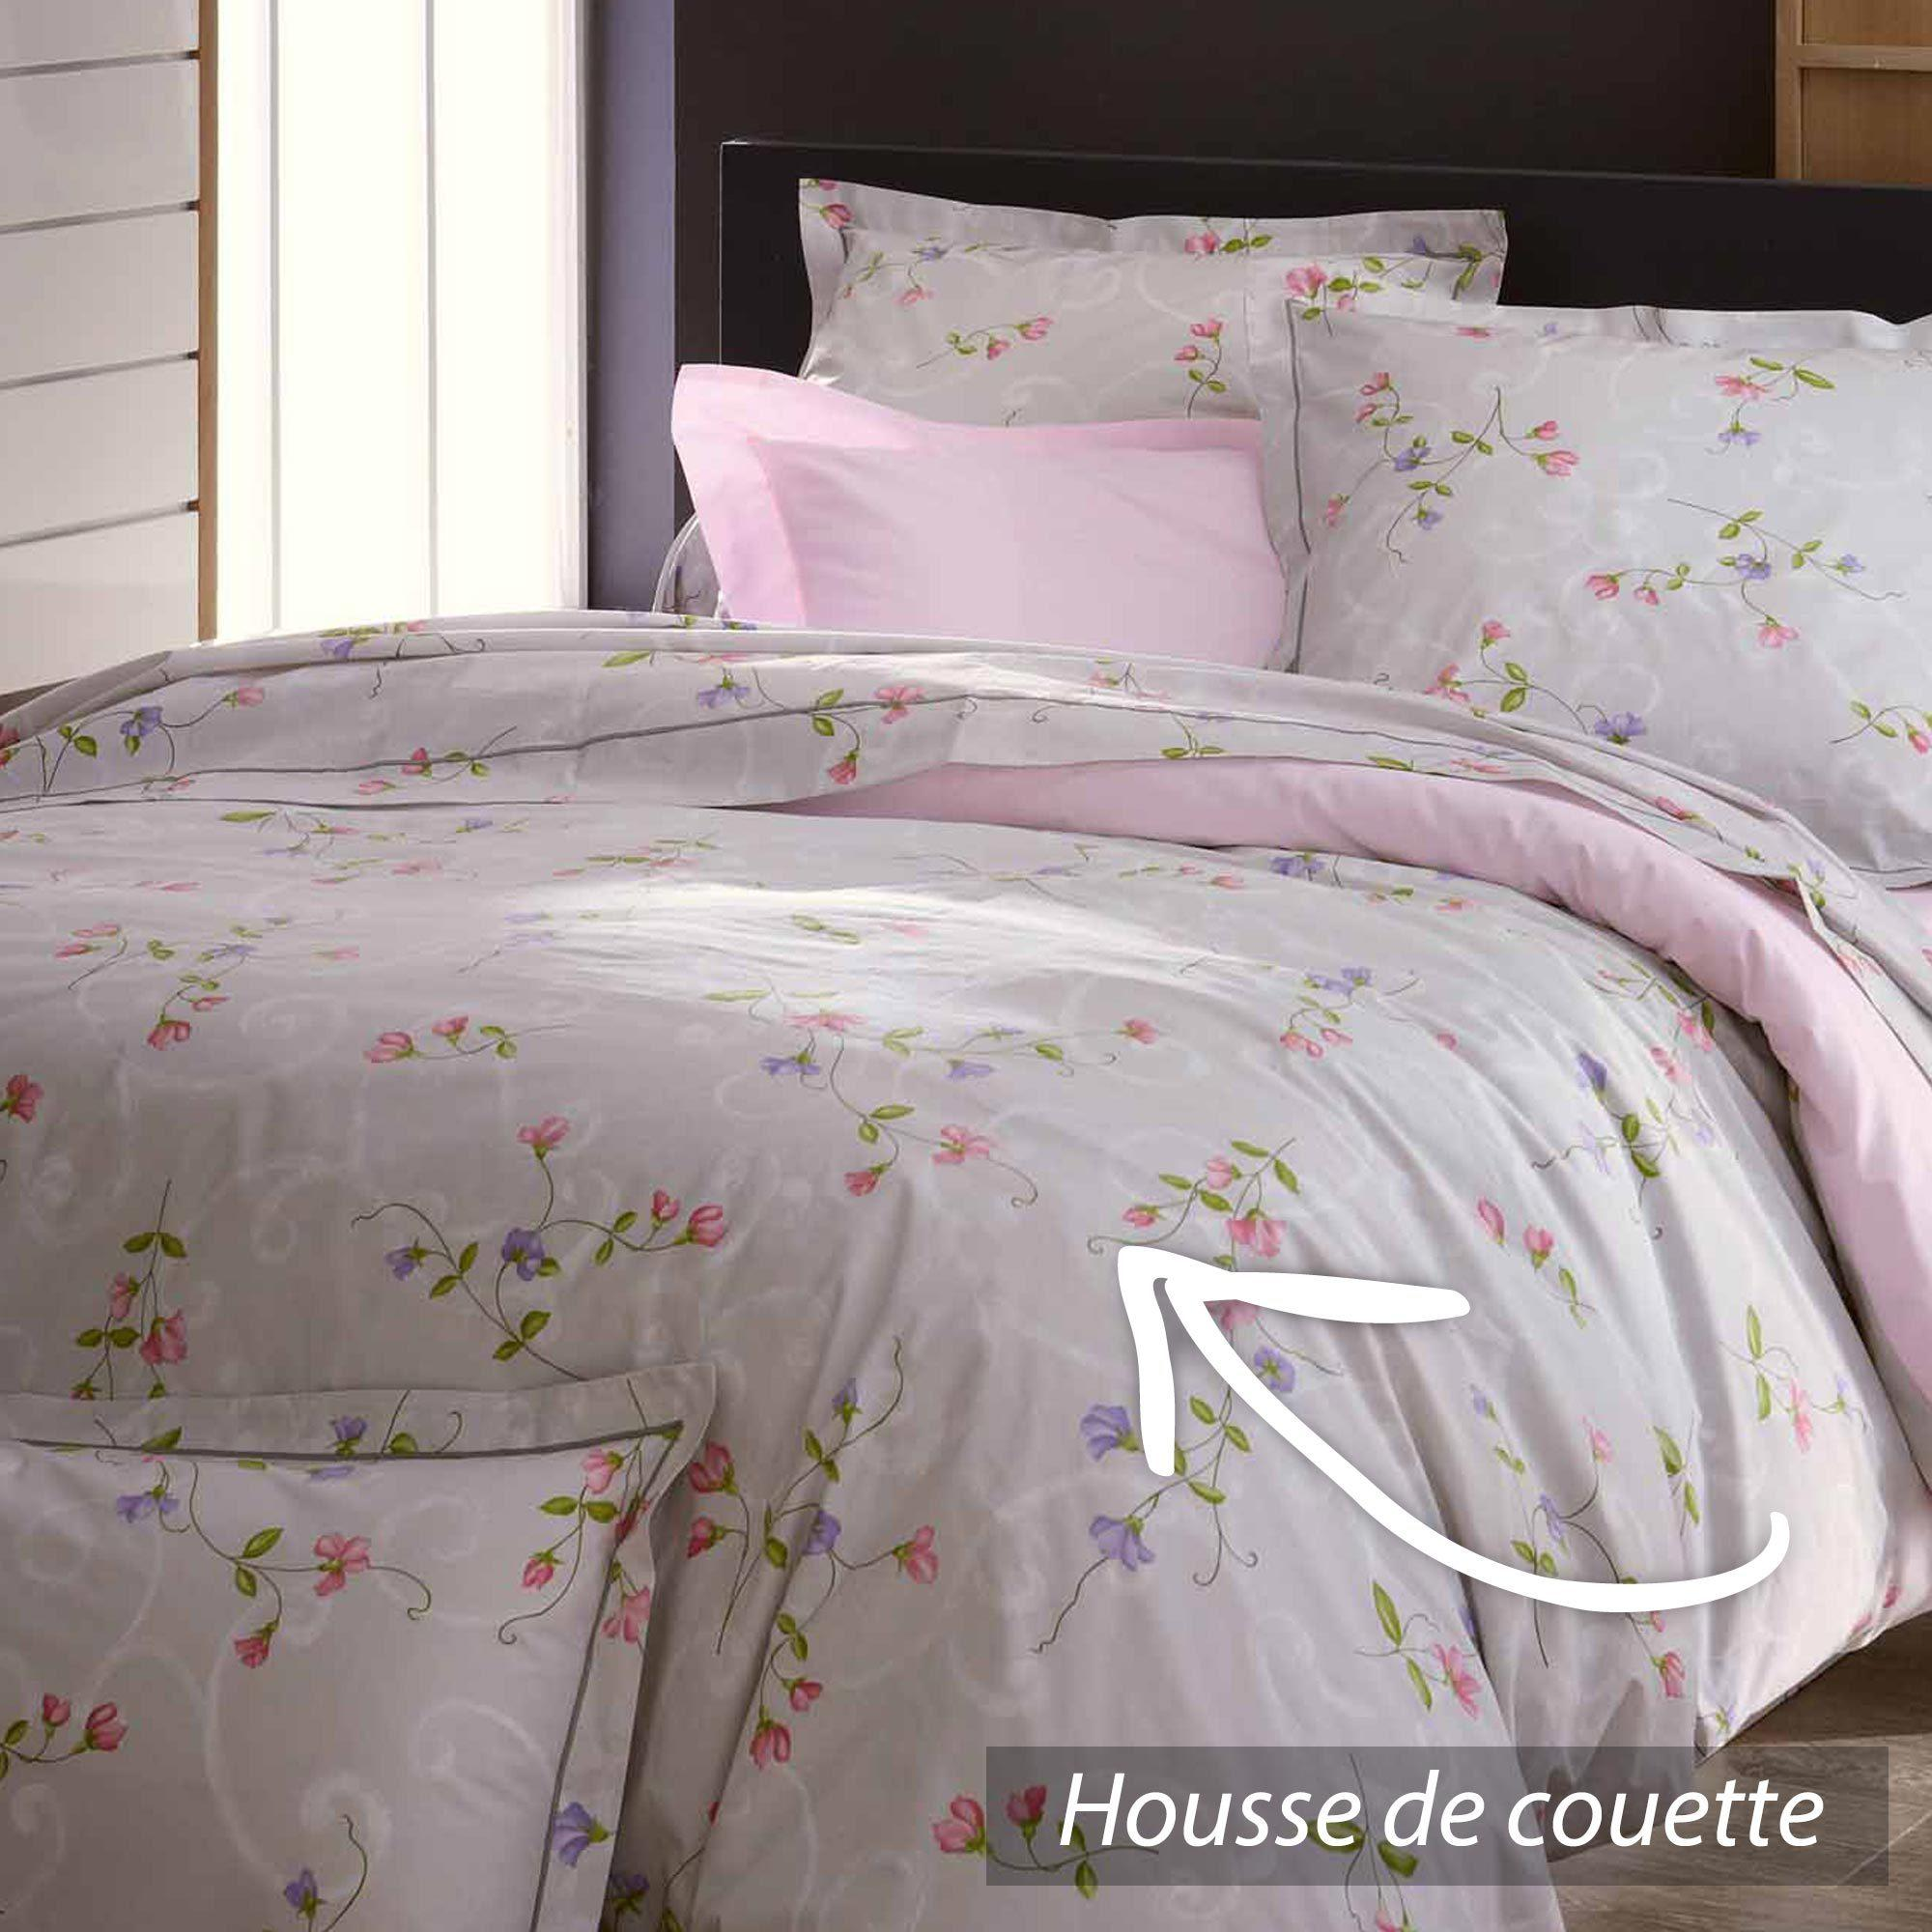 housse de couette percale pur coton peign 140x200 cm. Black Bedroom Furniture Sets. Home Design Ideas